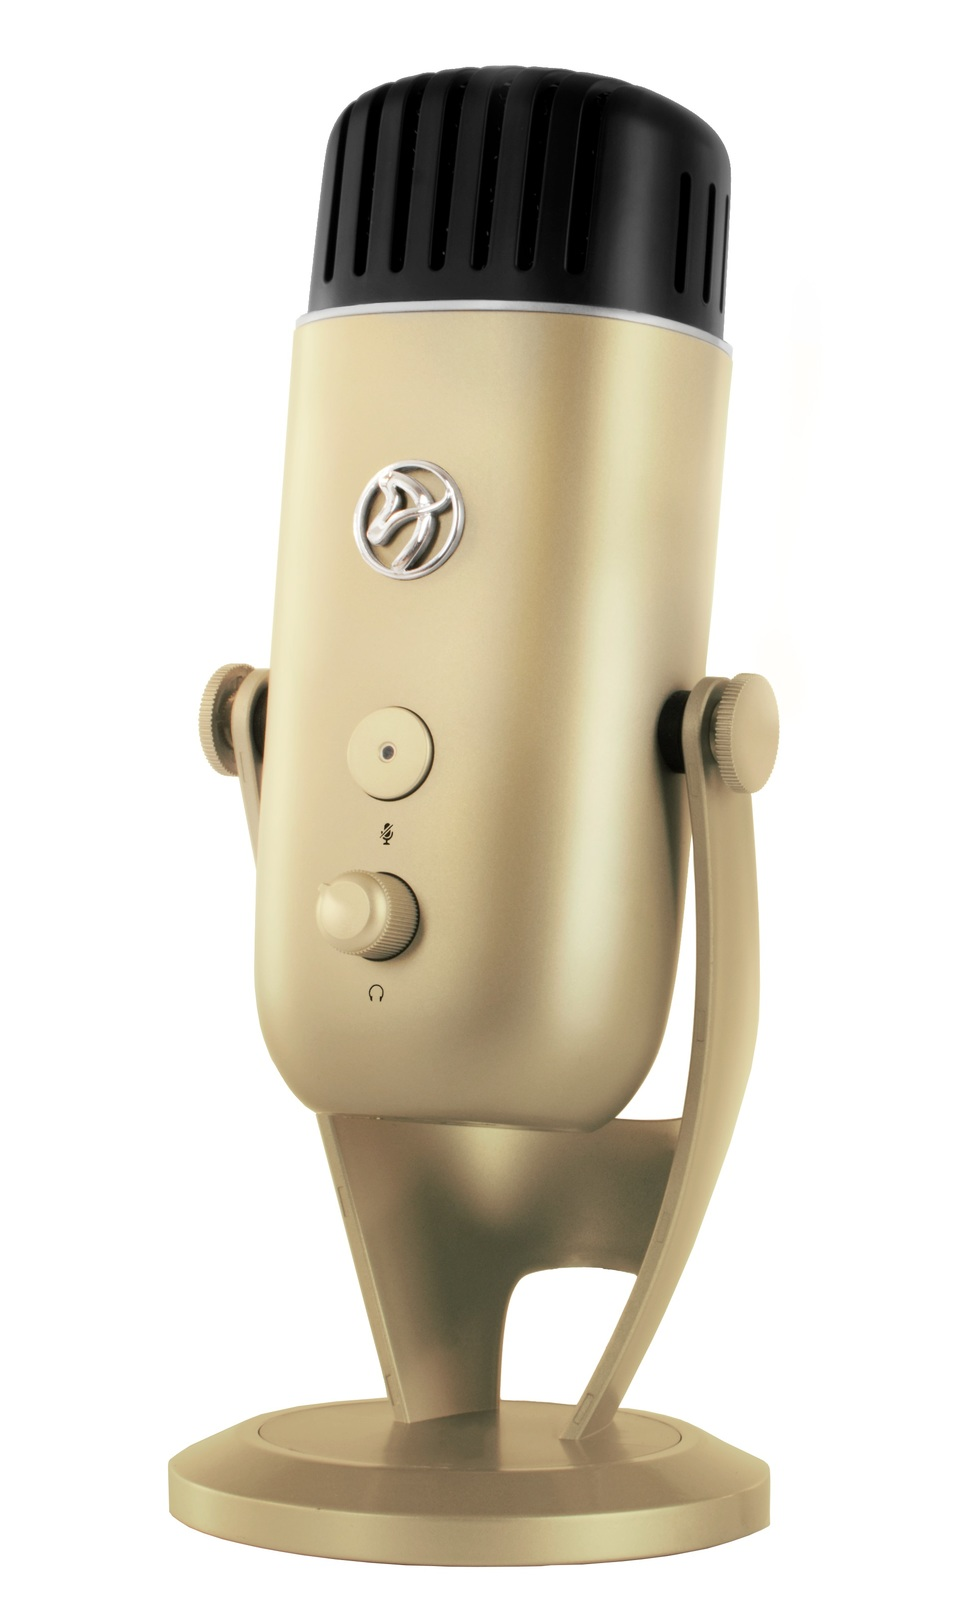 Arozzi Colonna Microphone (Gold) for PC image